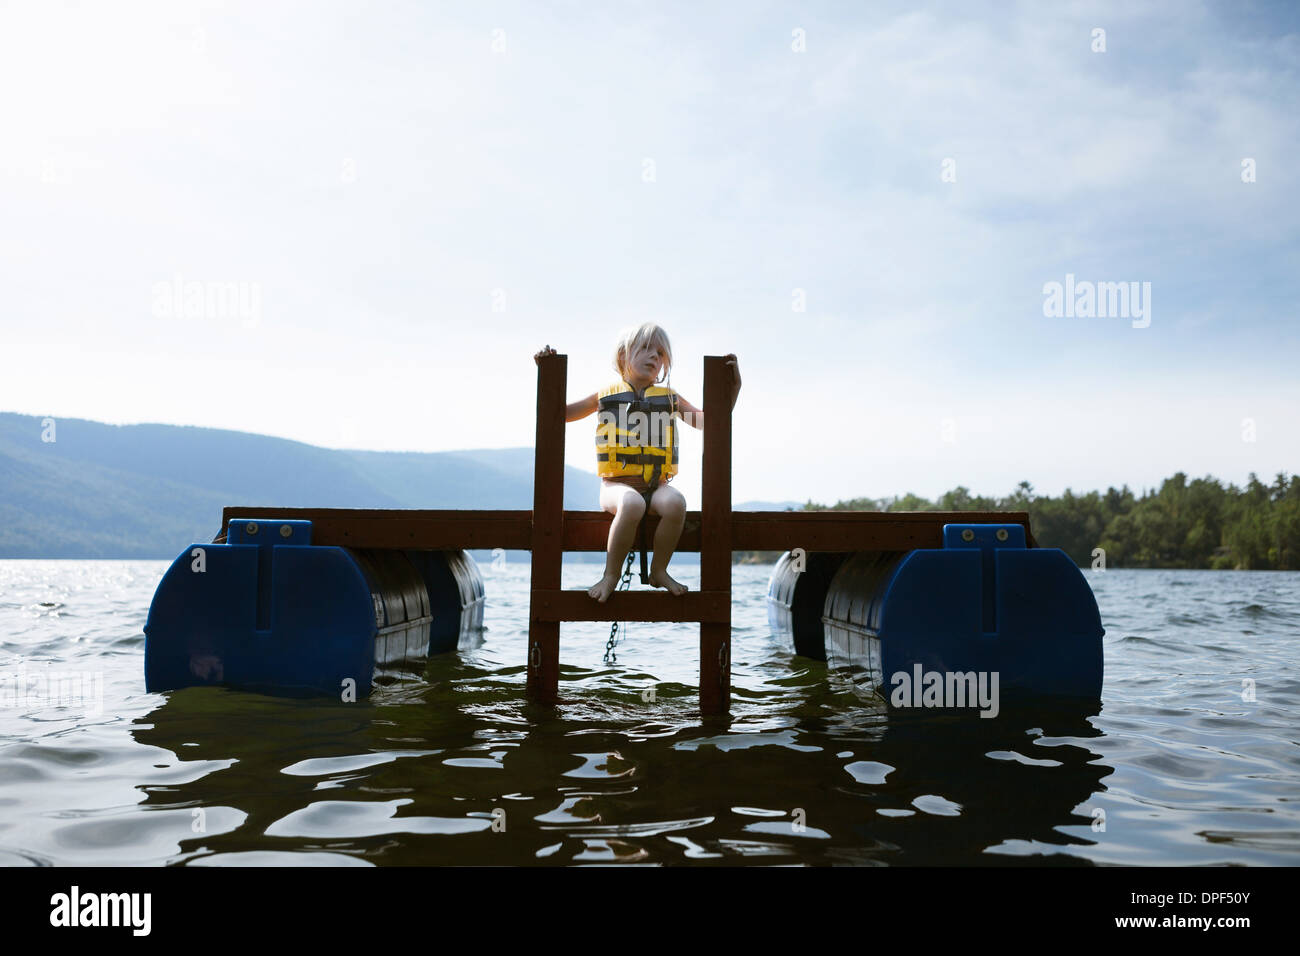 Female toddler sitting on floating platform, Silver Bay, New York, USA - Stock Image